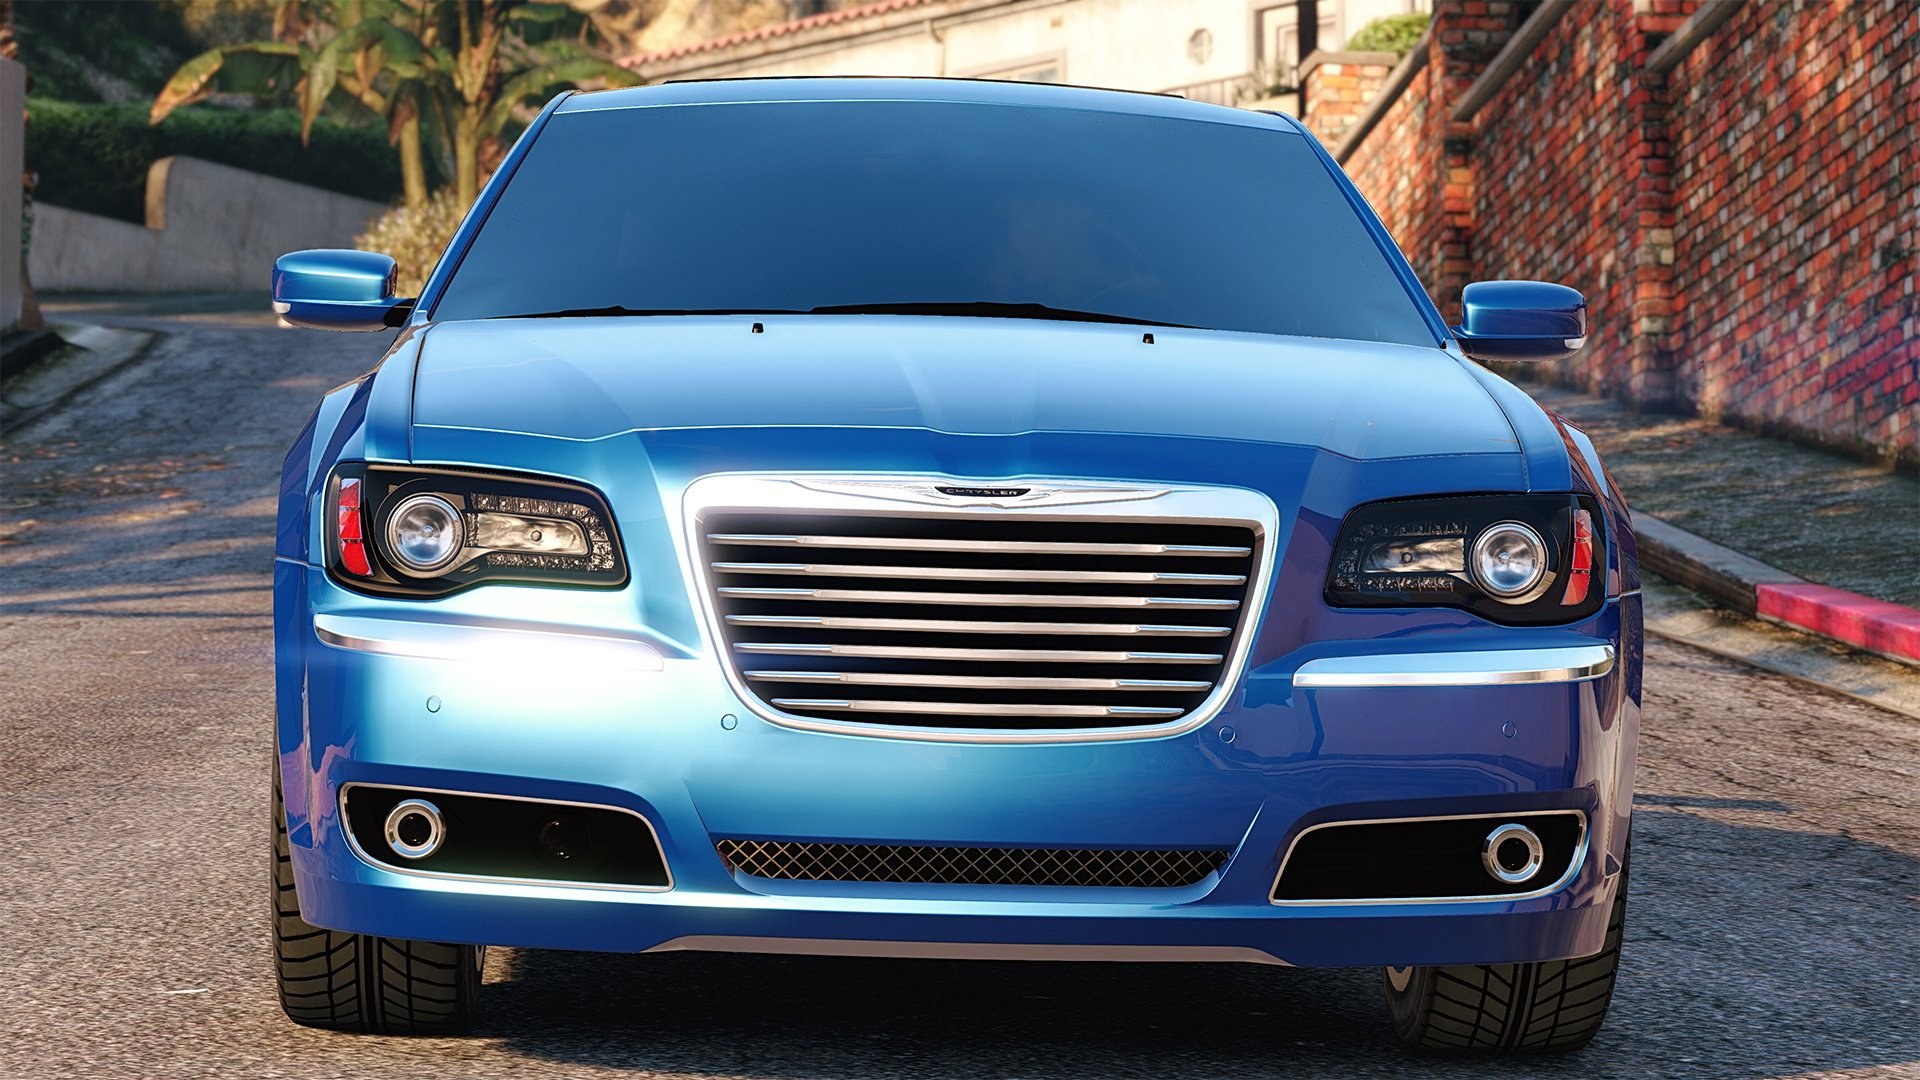 hitmanniko tuning mods on com vehicles chrysler replace add